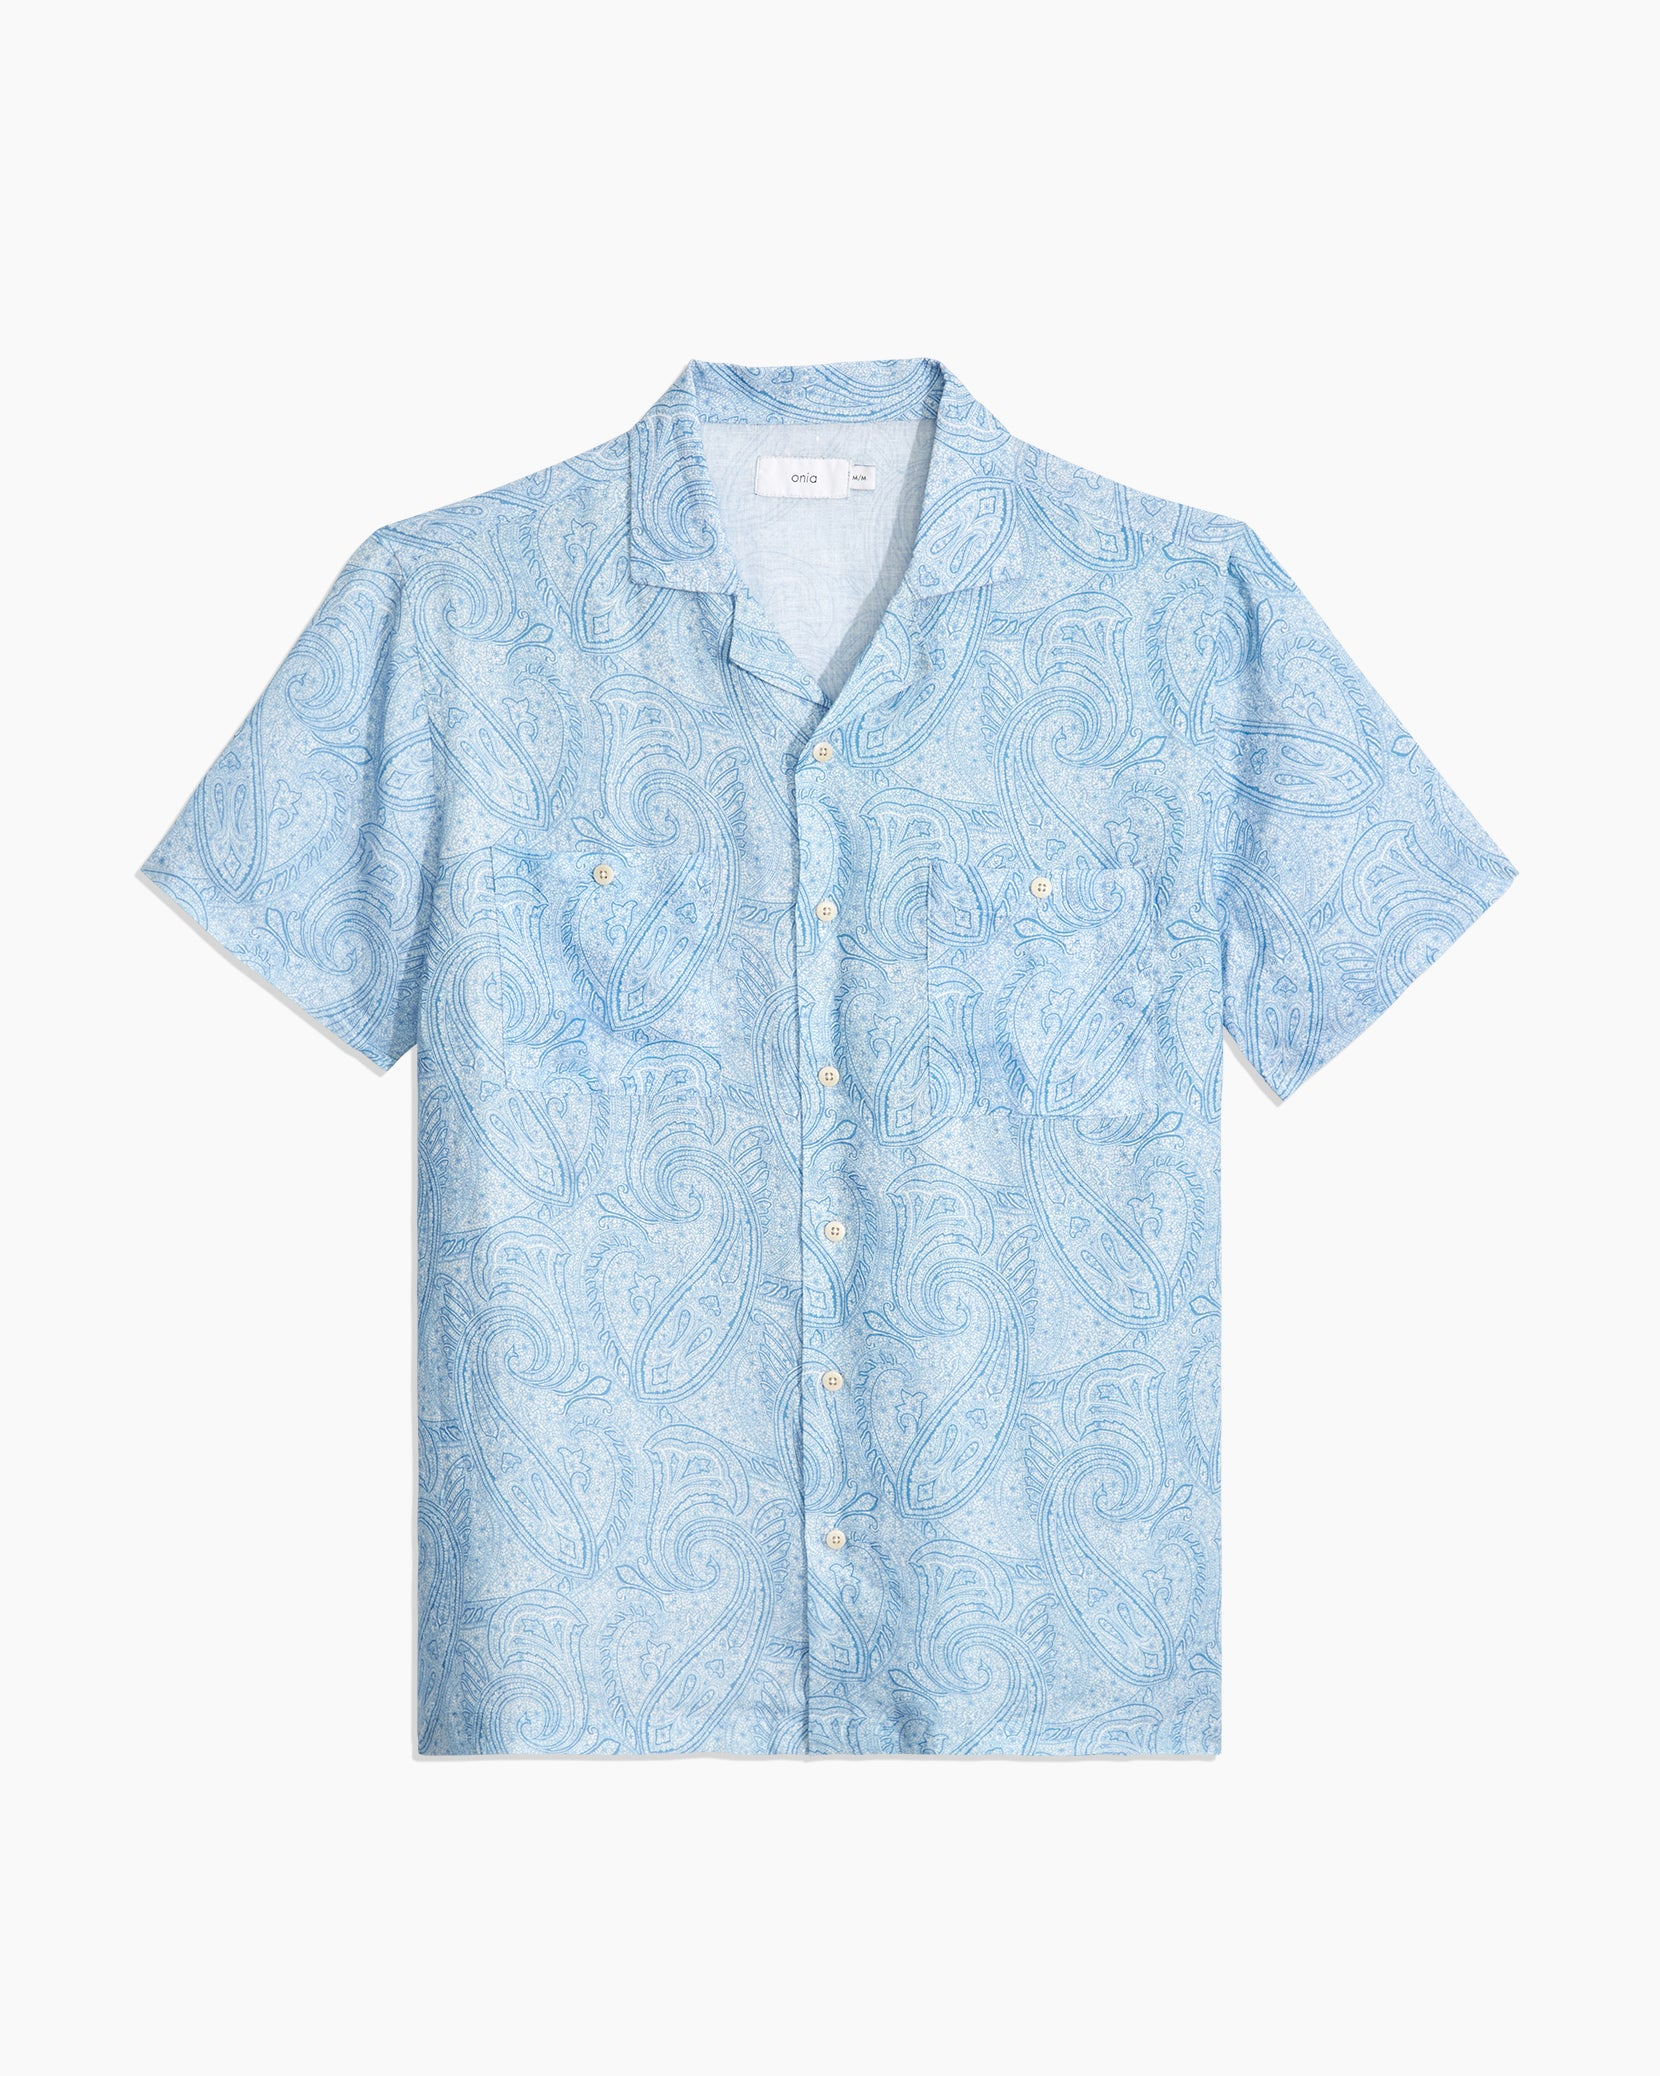 Paisley Linen Camp Shirt in Parisian Blue - 1 - Onia